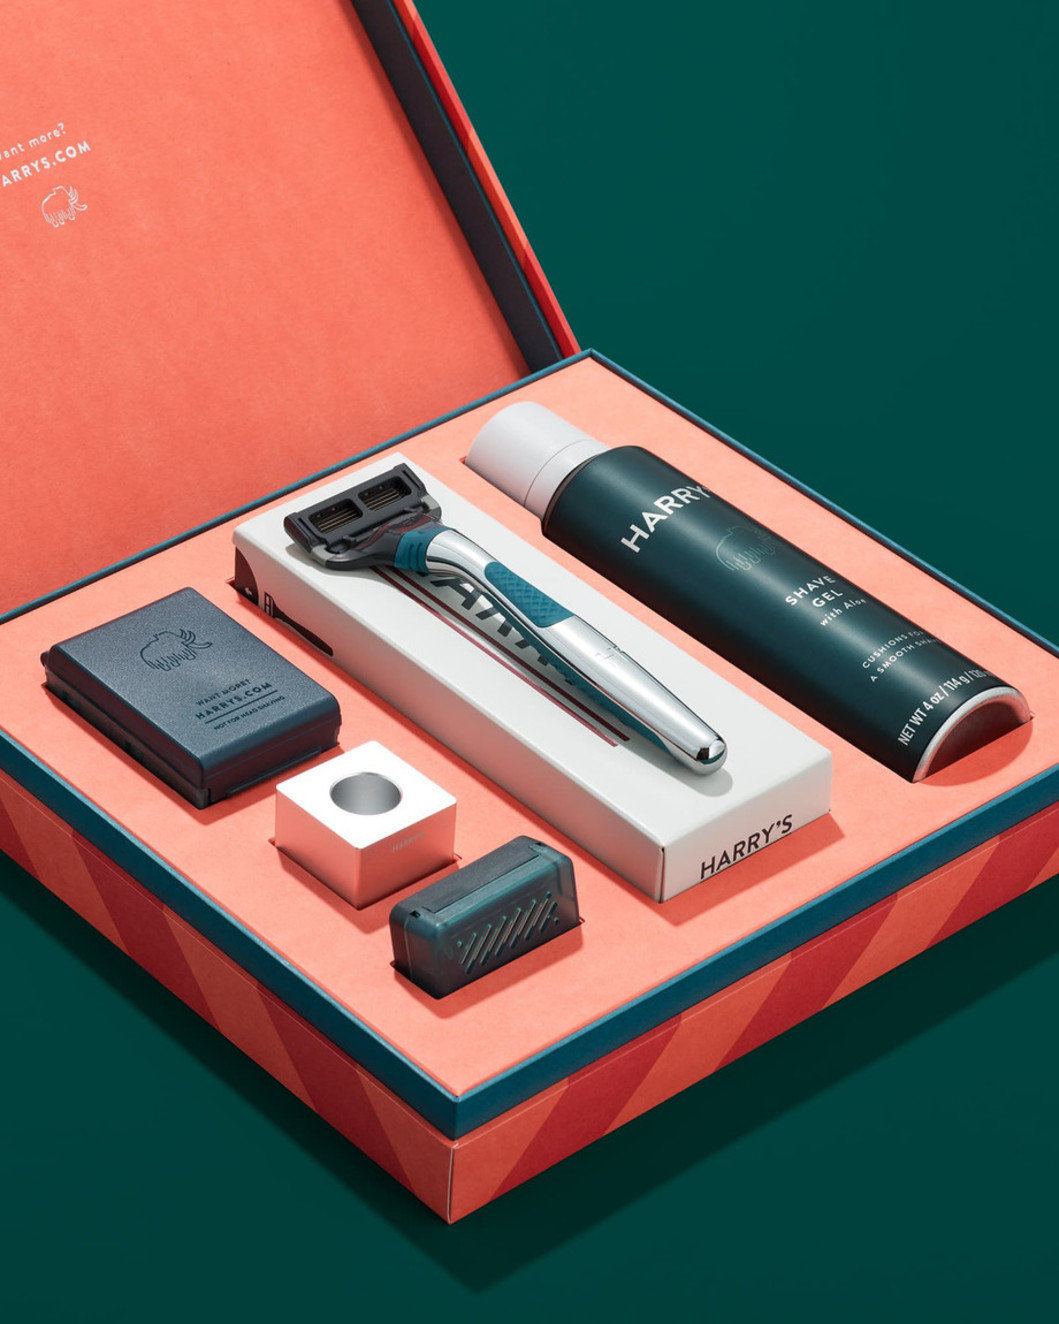 Harry's Holiday Winston Gift Set in an orange box